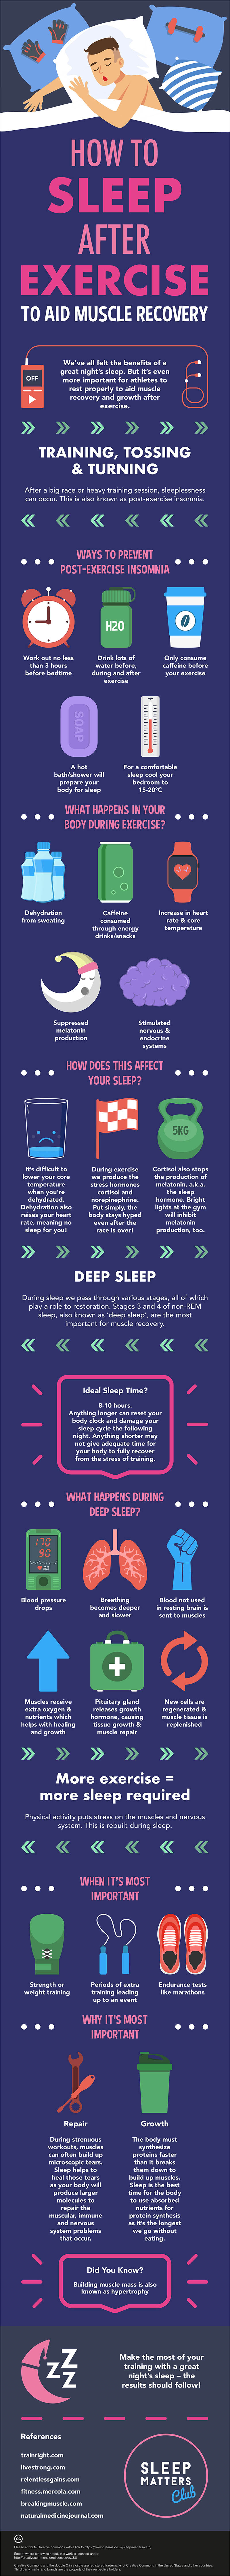 How To Sleep After Exercise To Aid Muscle Recovery & Growth